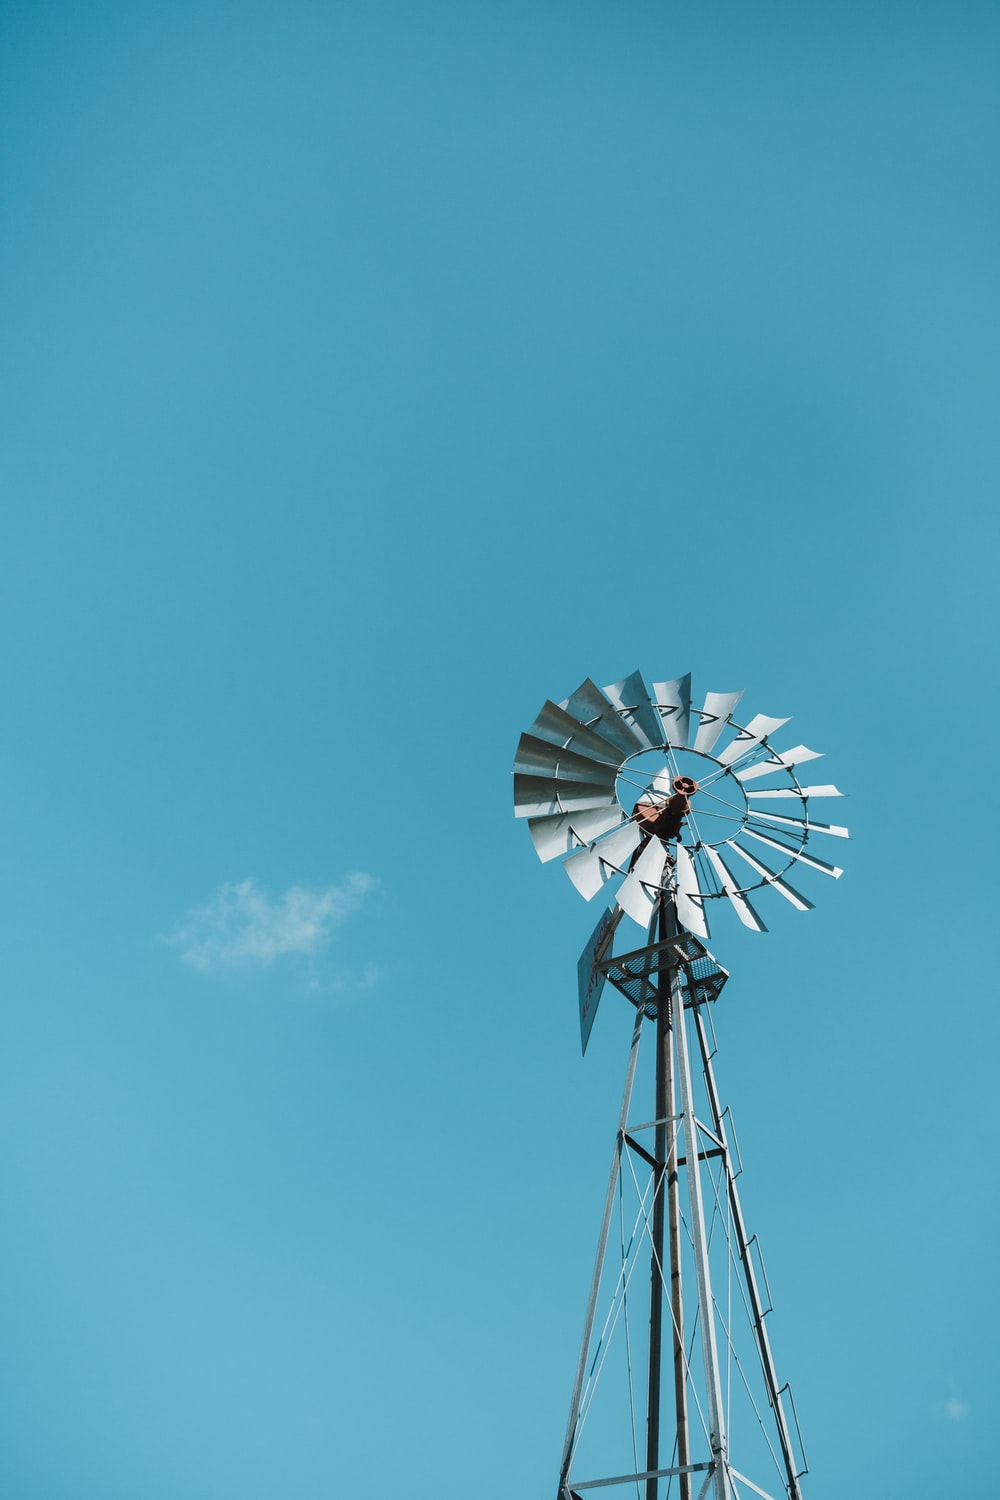 white and black windmill under blue sky during daytime